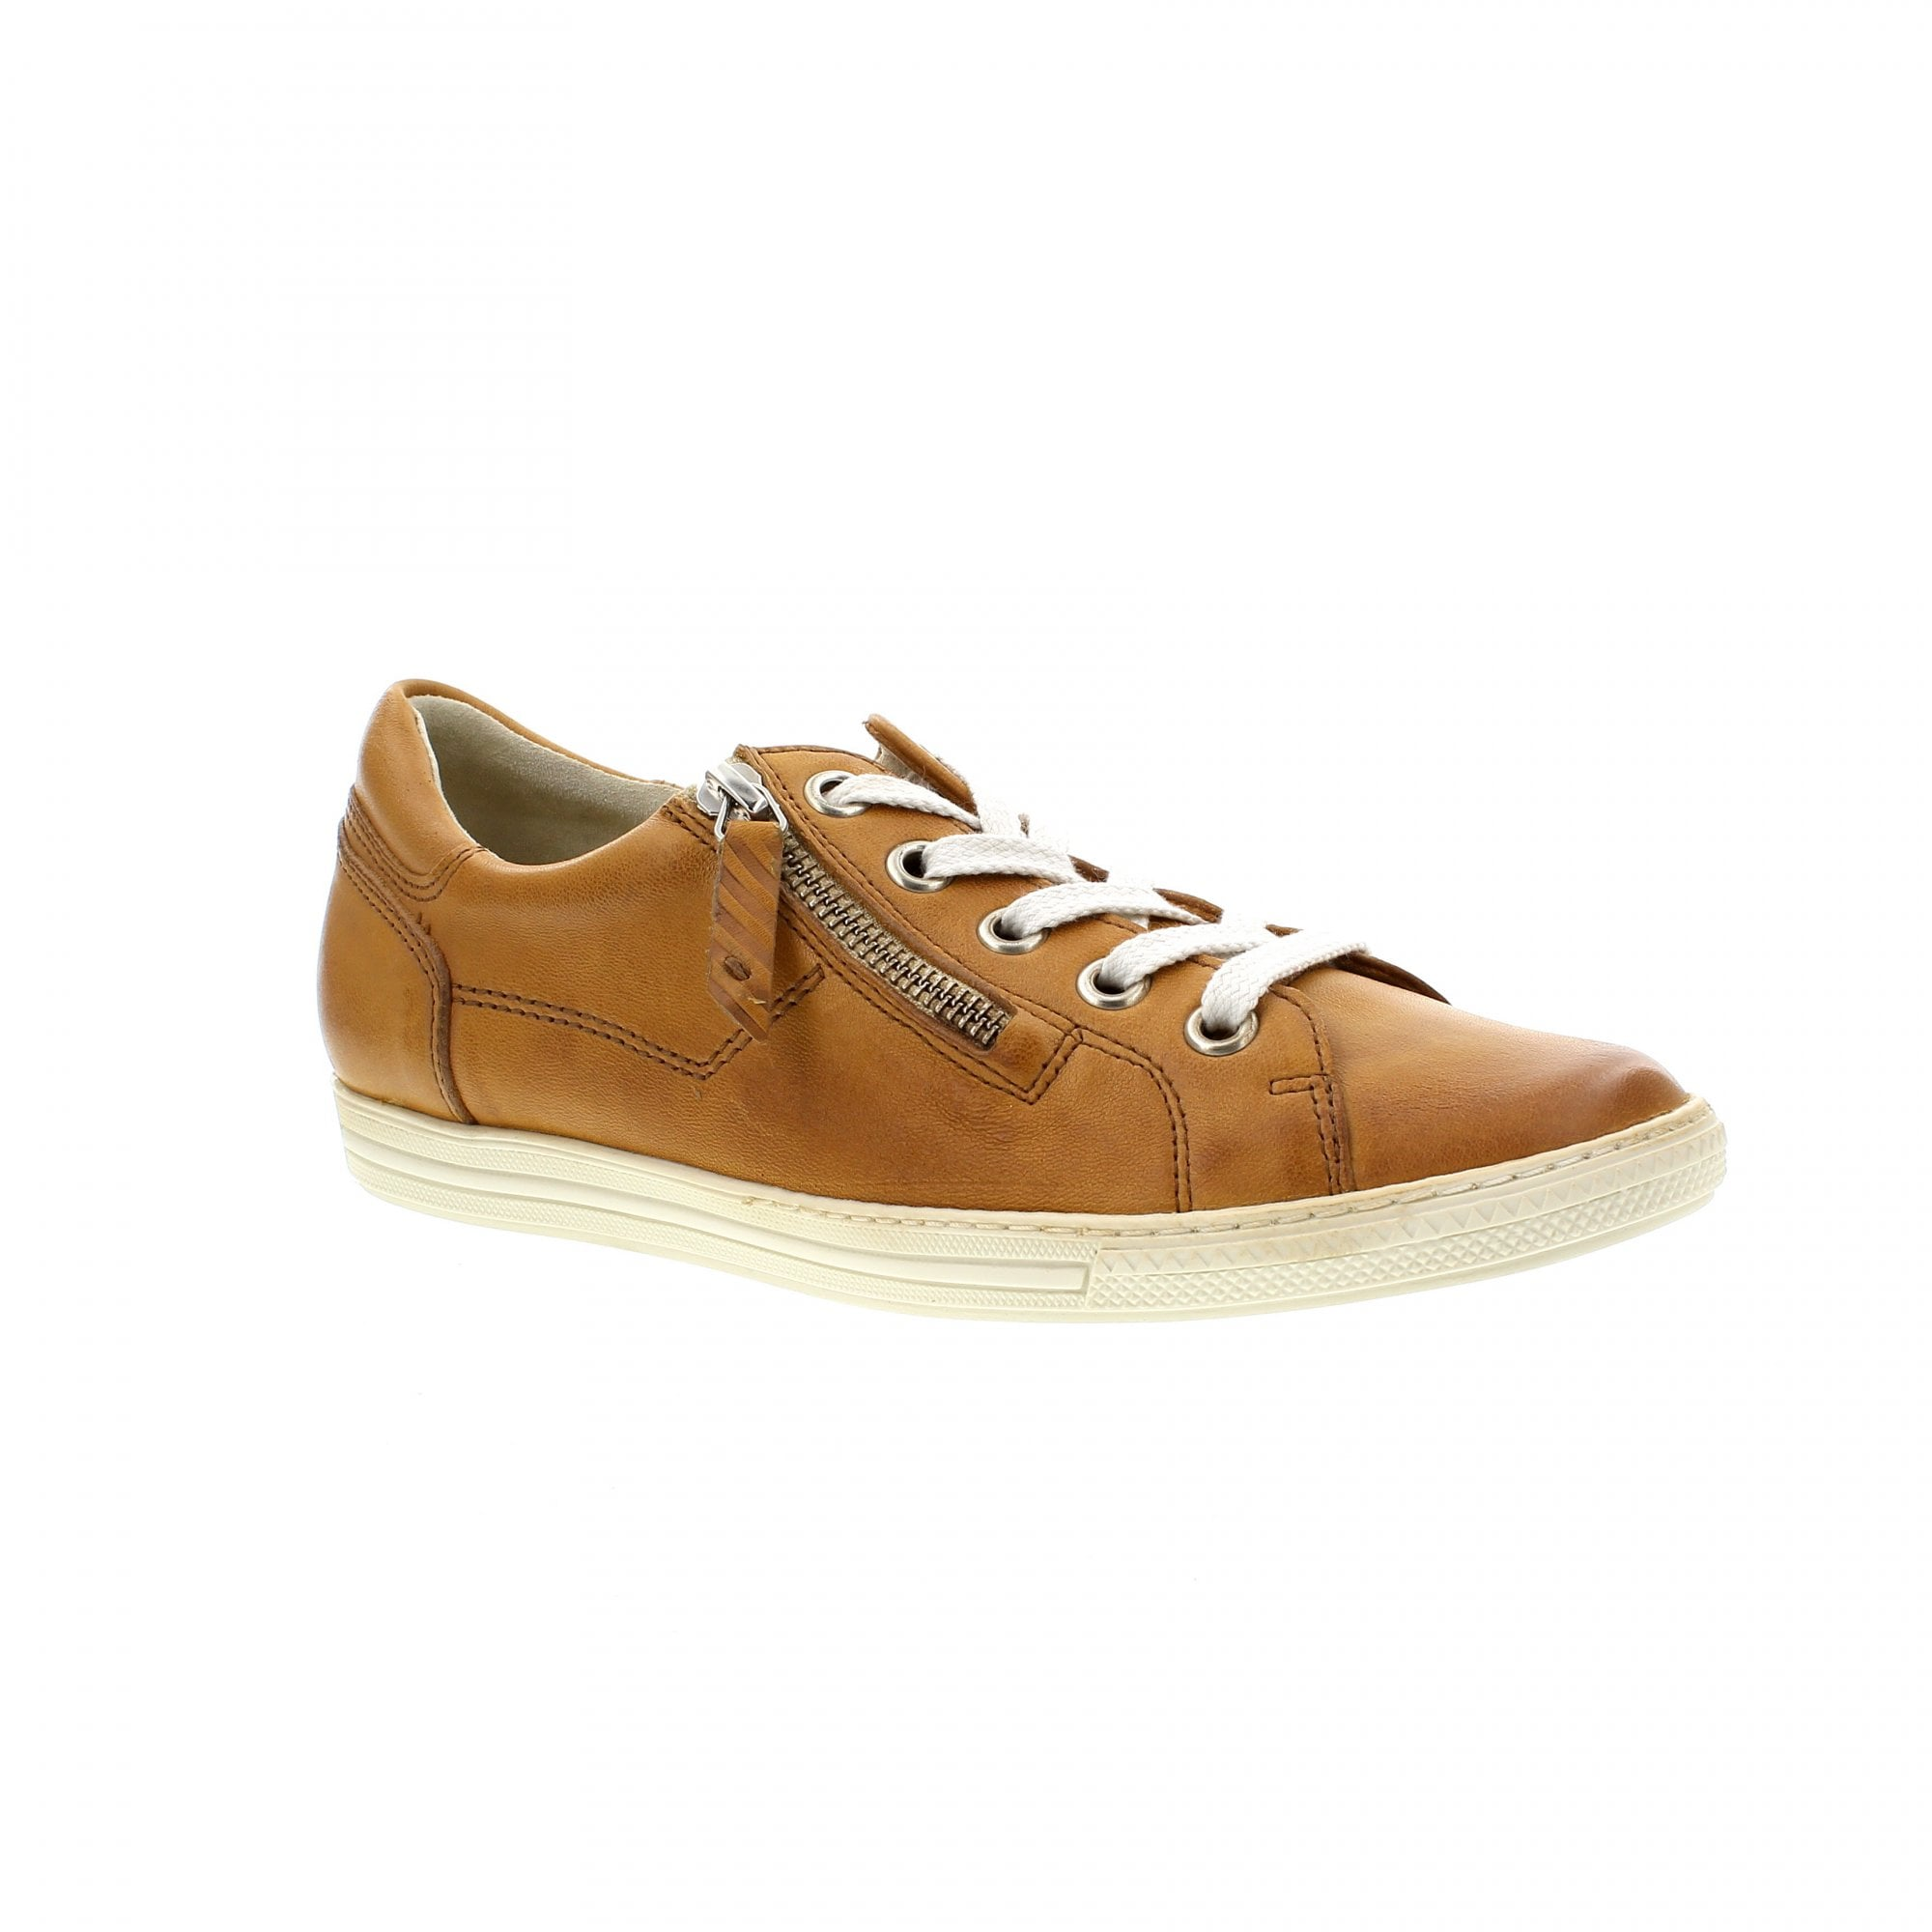 4940 056 Tan Leather Womens Trainers